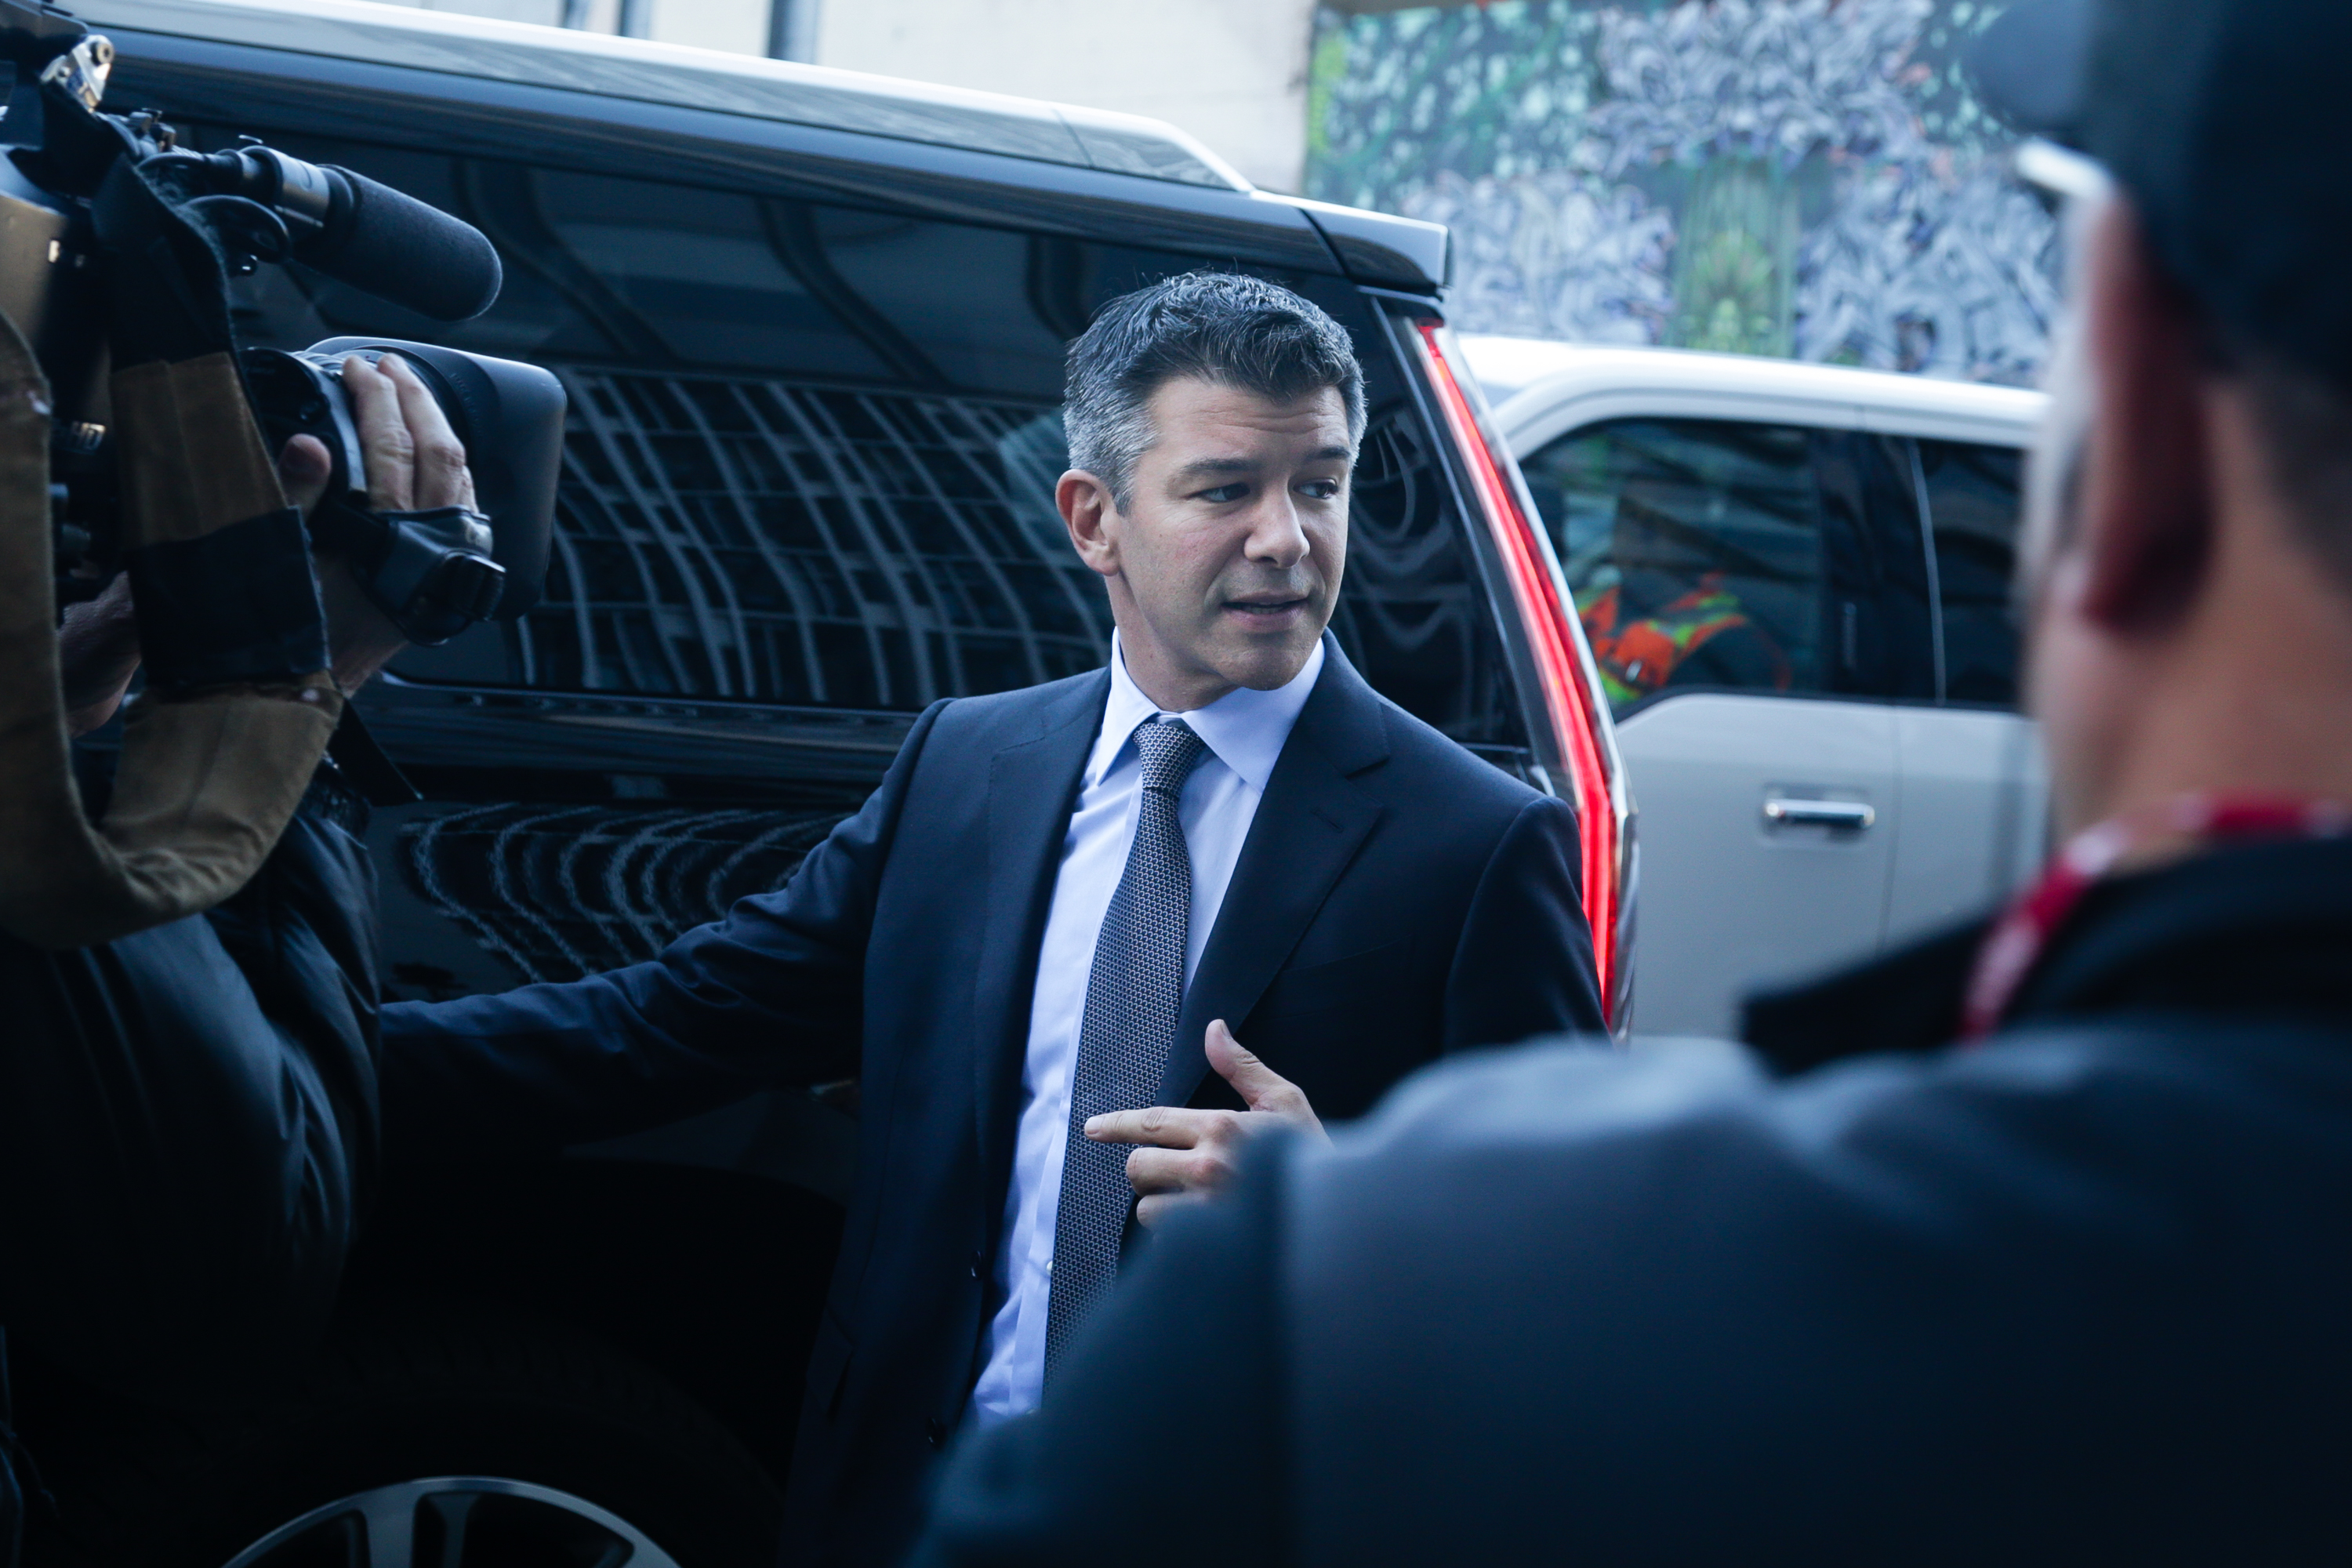 Former Uber CEO Travis Kalanick exiting a courthouse, surrounded by reporters and cameras.